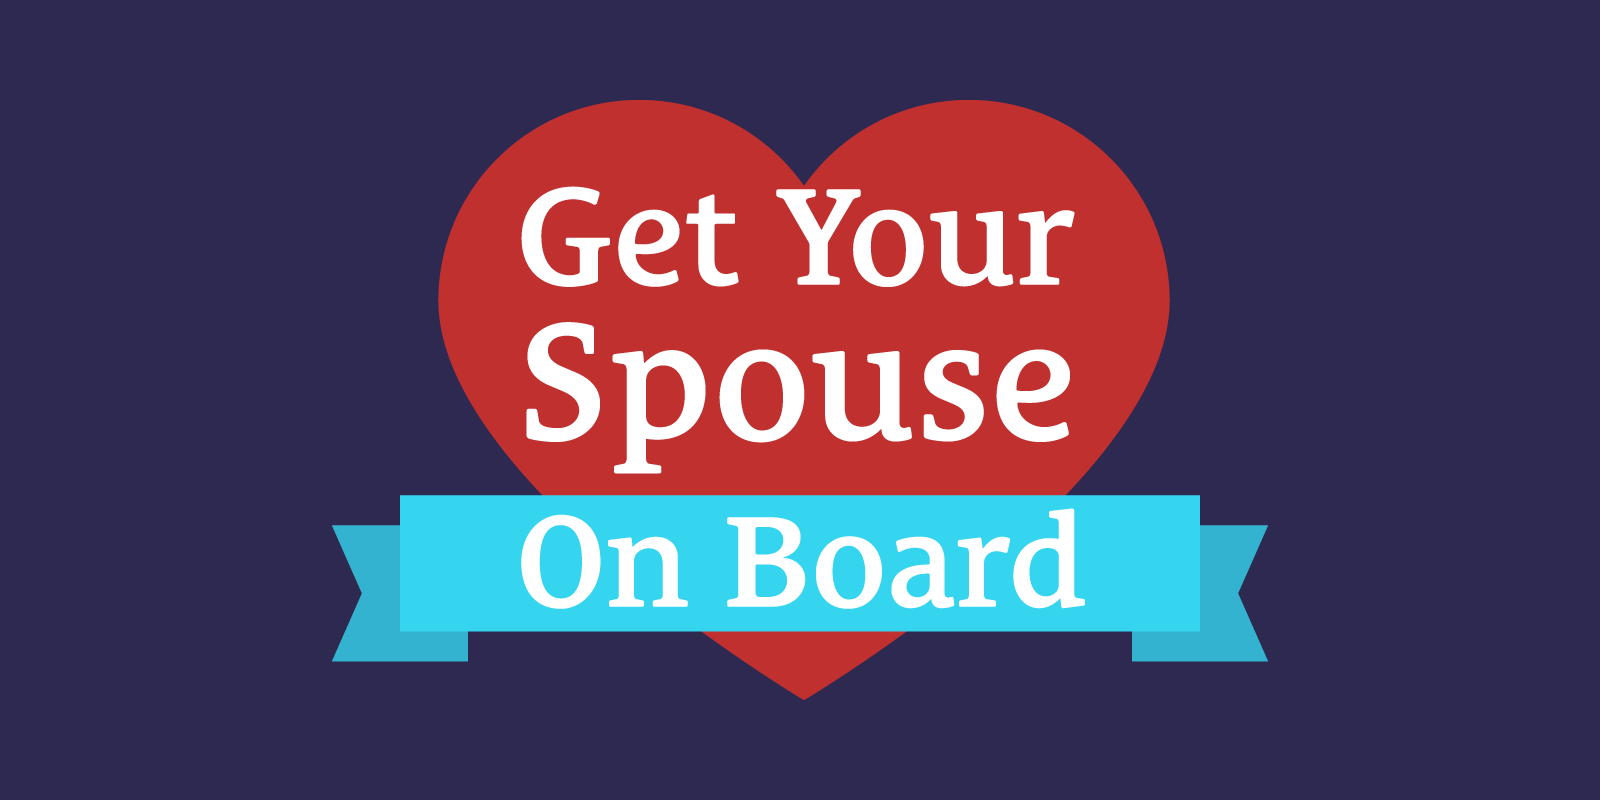 How to Get Your Spouse On Board 100% Even if They're Scared